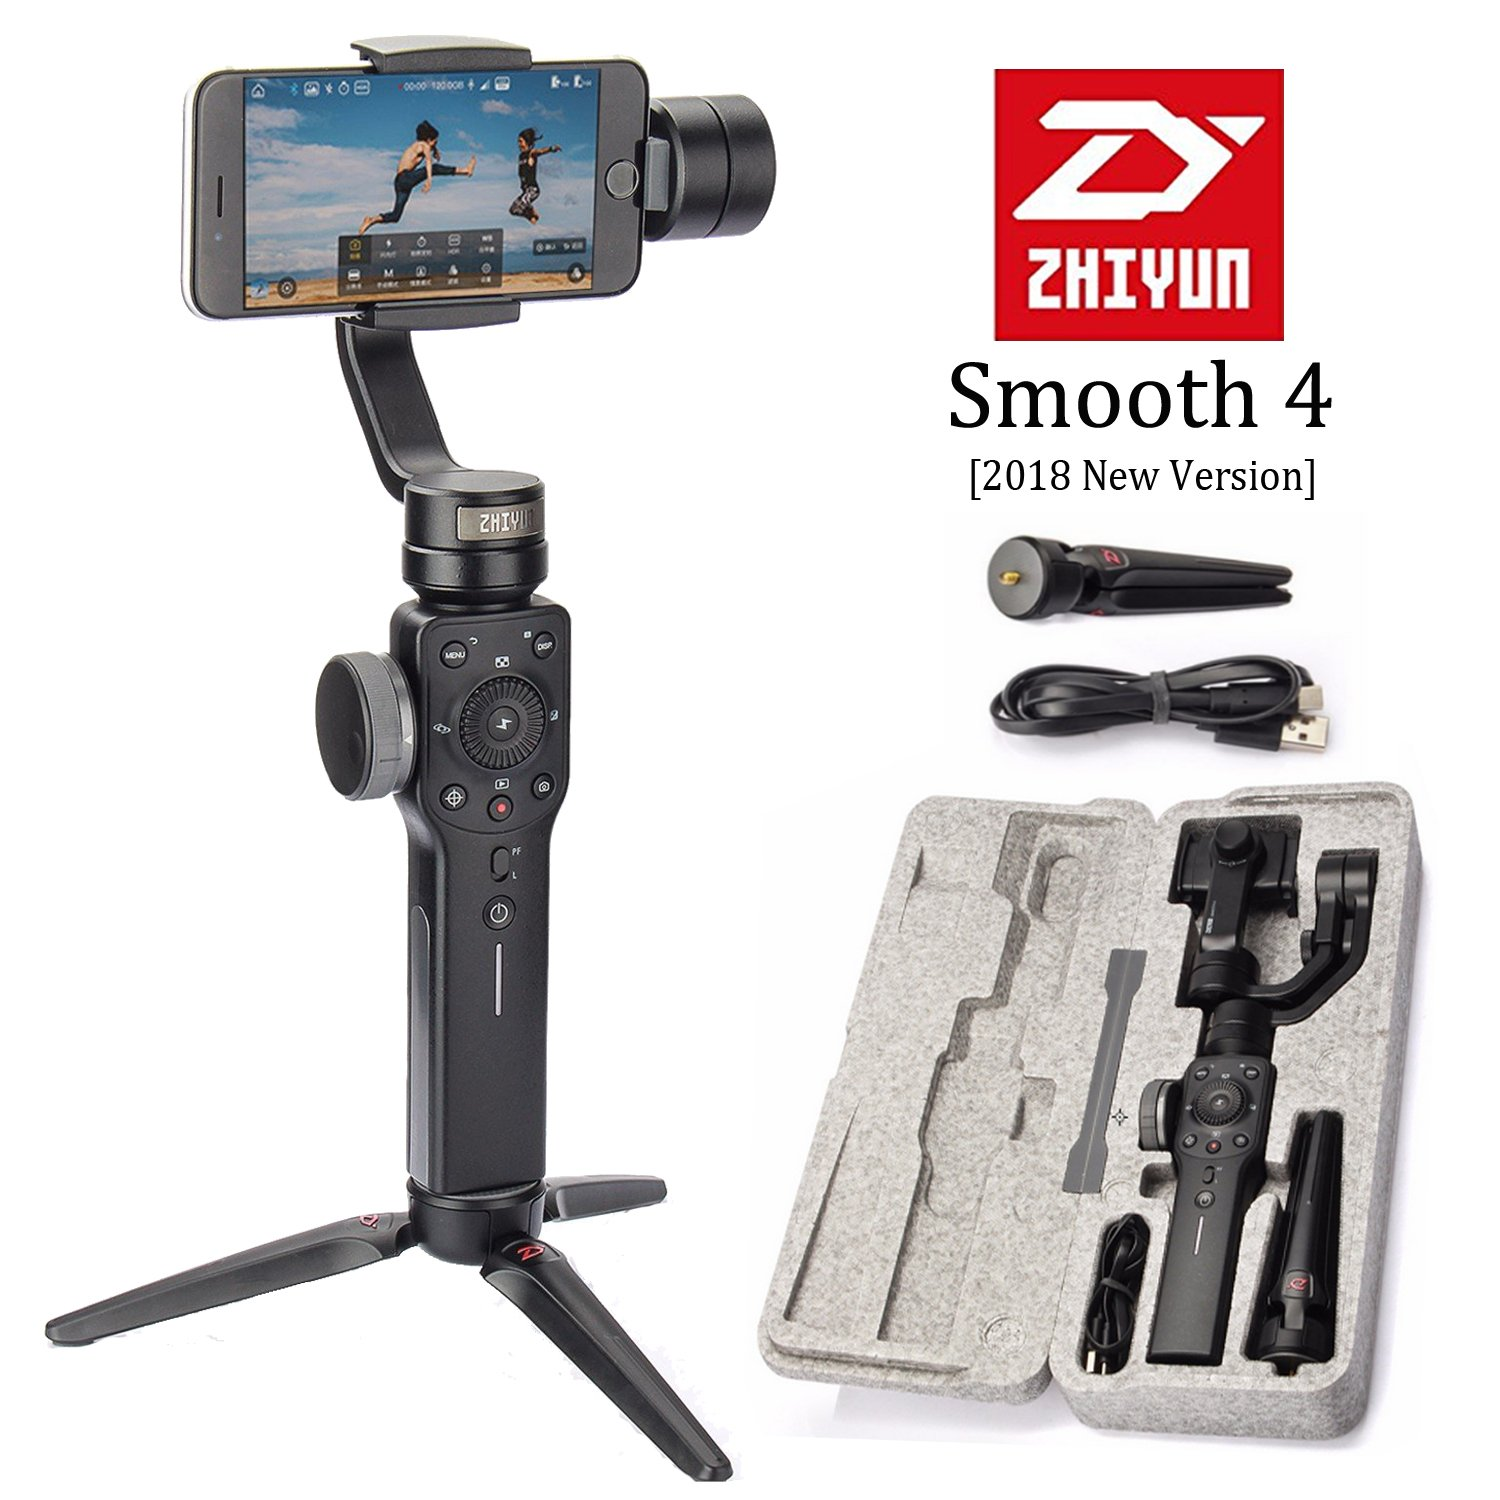 Zhiyun Smooth 4 3-Axis Handheld Smartphone Gimbal Stabilizer, Upgraded Phone Gyro Stabilizer Vlog Tripod w/Focus Pull&Zoom for iPhone Xs Max X/8 Plus/7/SE Samsung Galaxy S9+/S8/S7 etc Mobiles (Black) by zhi yun